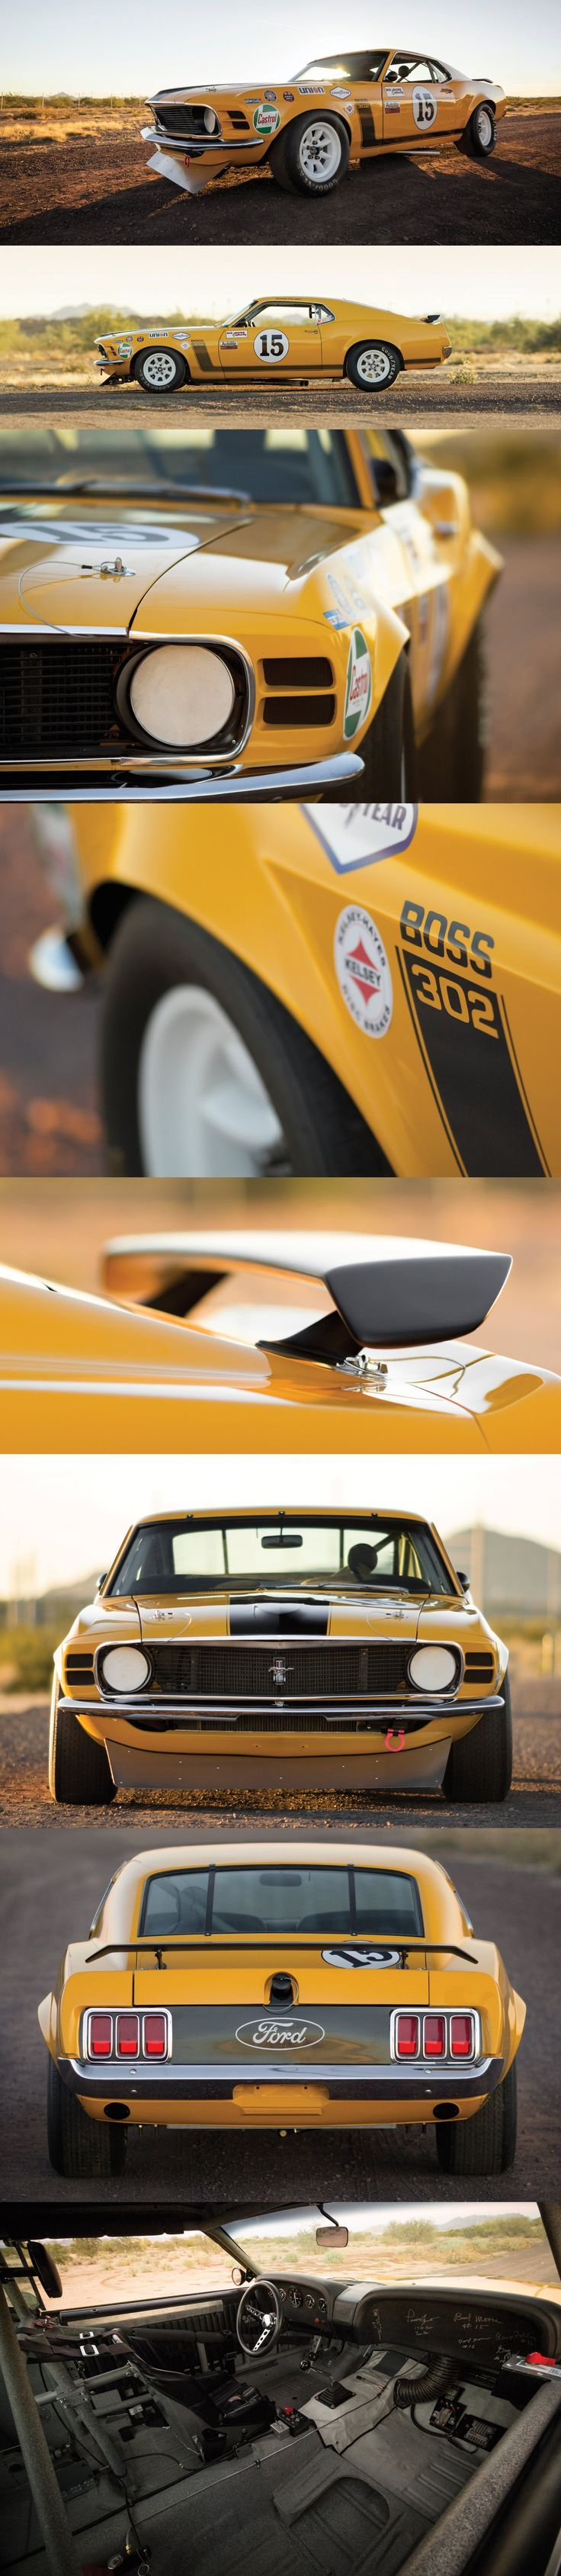 1970 Ford Mustang Boss 302 Trans Am..Re-pin Brought to you by agents at HouseofInsurance in EugeneOregon for LowCostInsurance